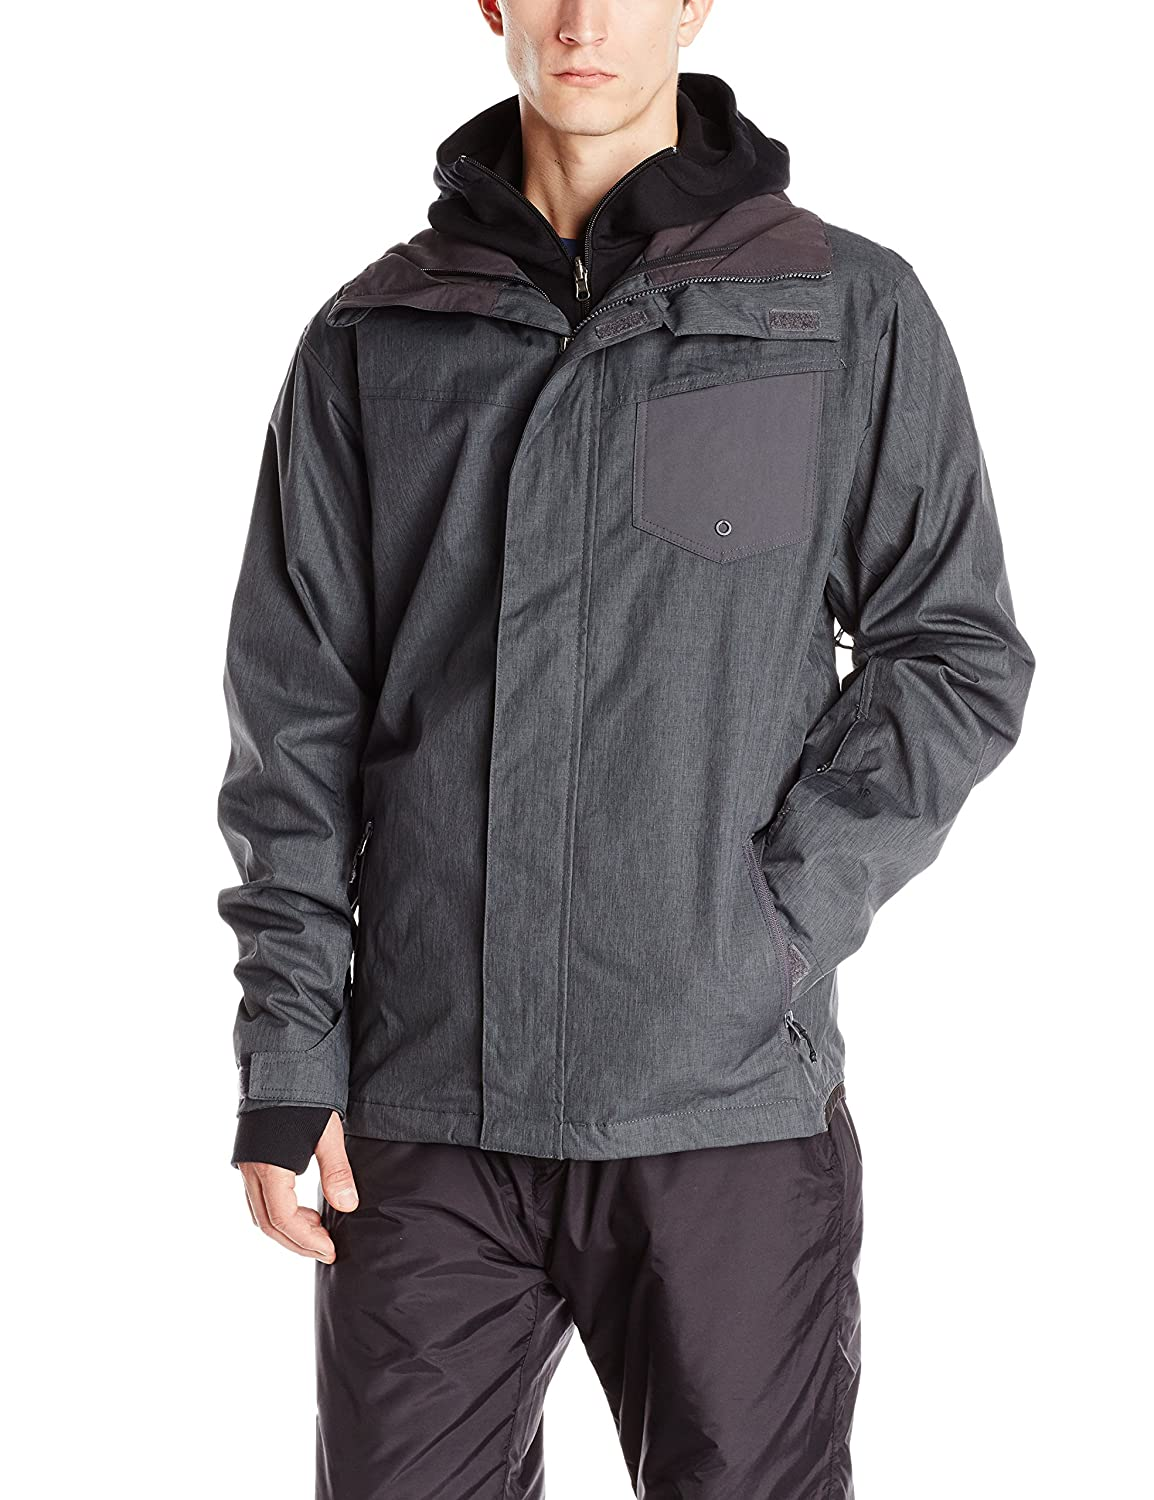 quiksilver herren snowboard jacke mission syst jacket online kaufen. Black Bedroom Furniture Sets. Home Design Ideas